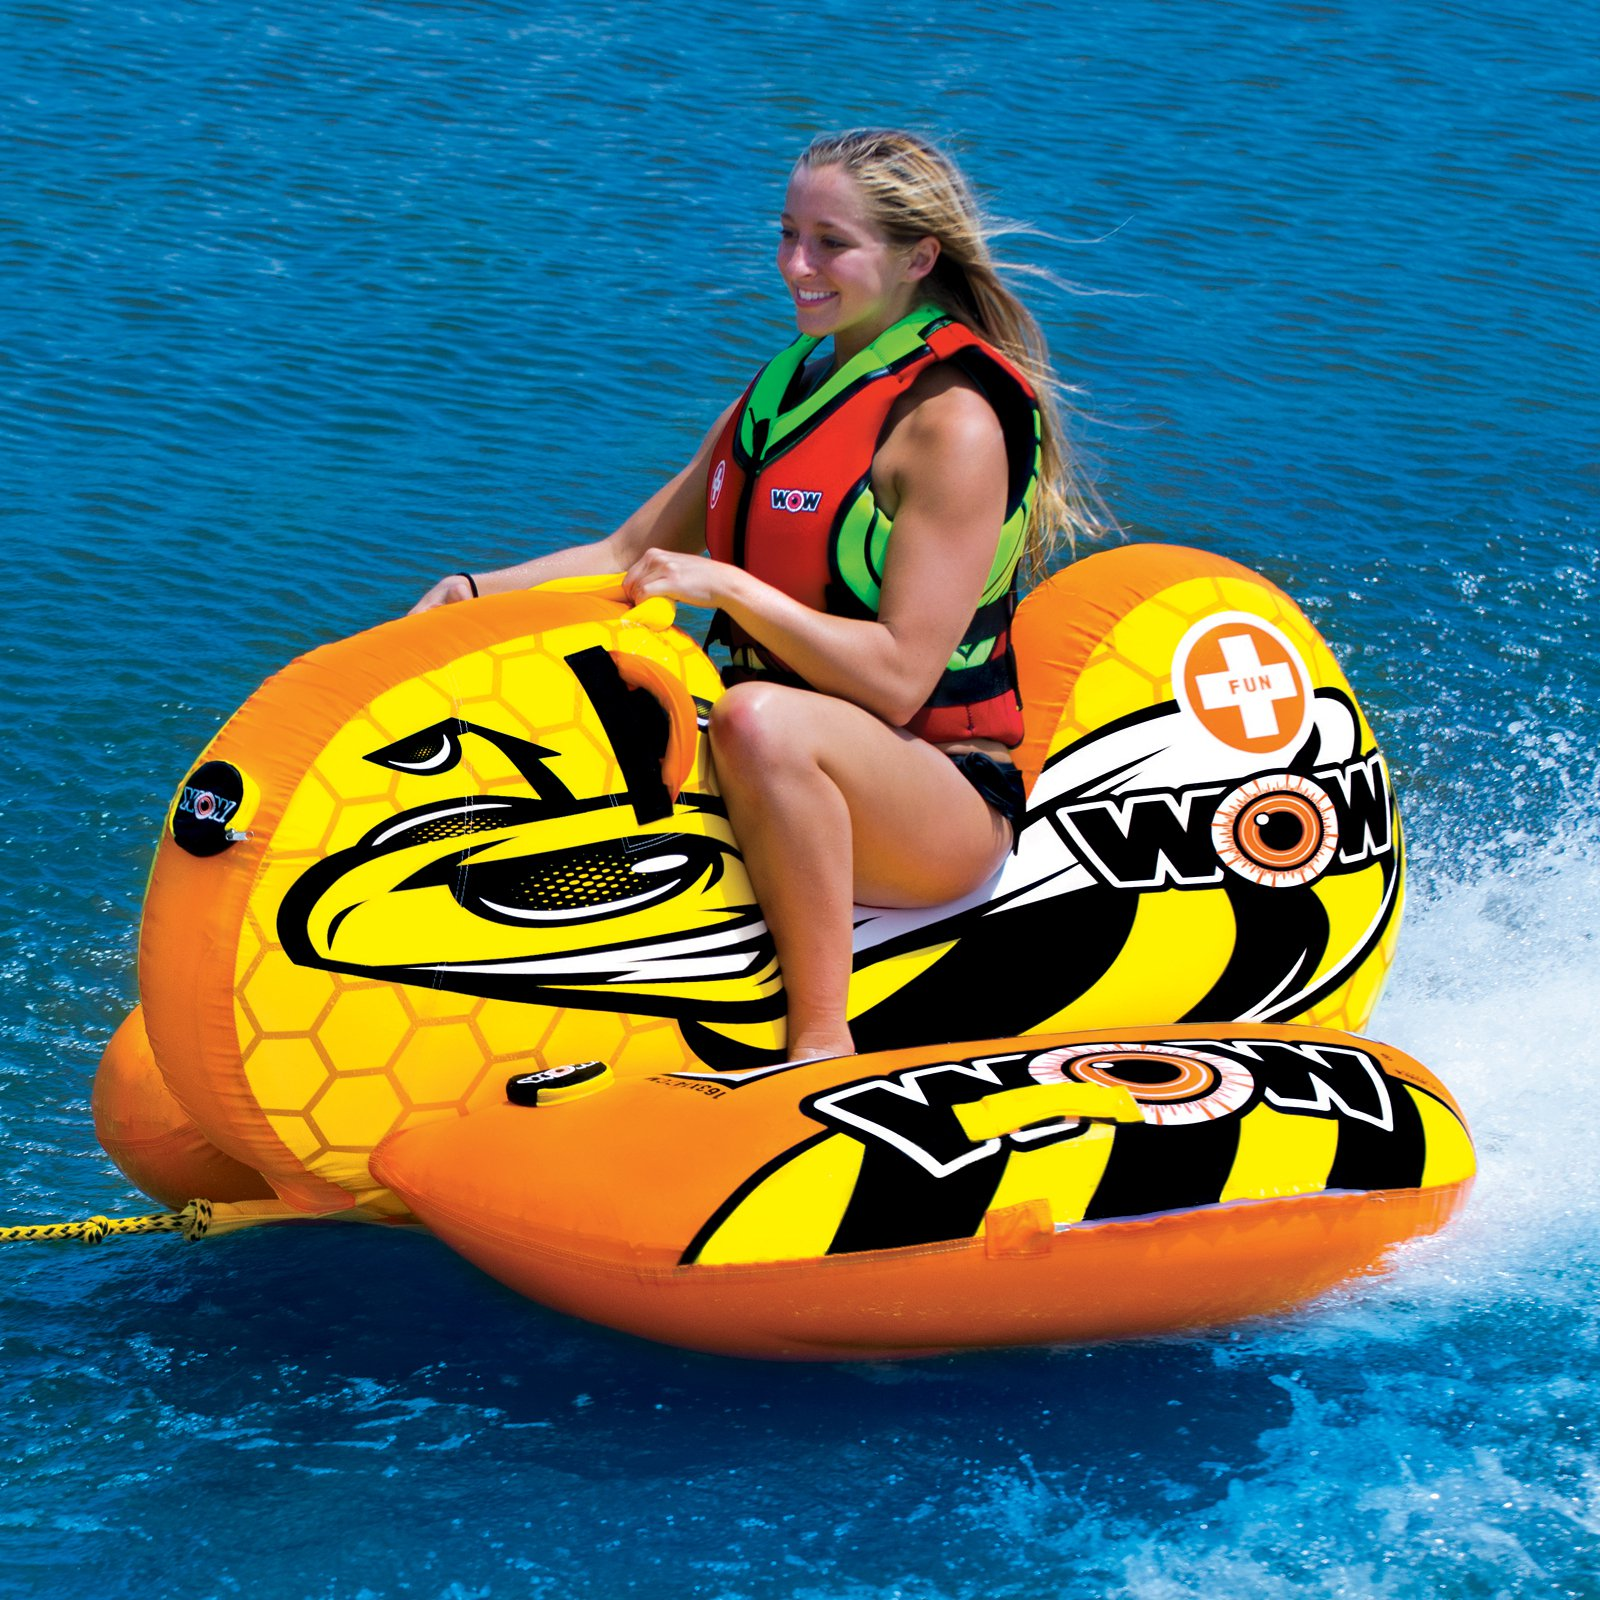 WOW World of Watersports Buzz Boat Ski Tube by WOW